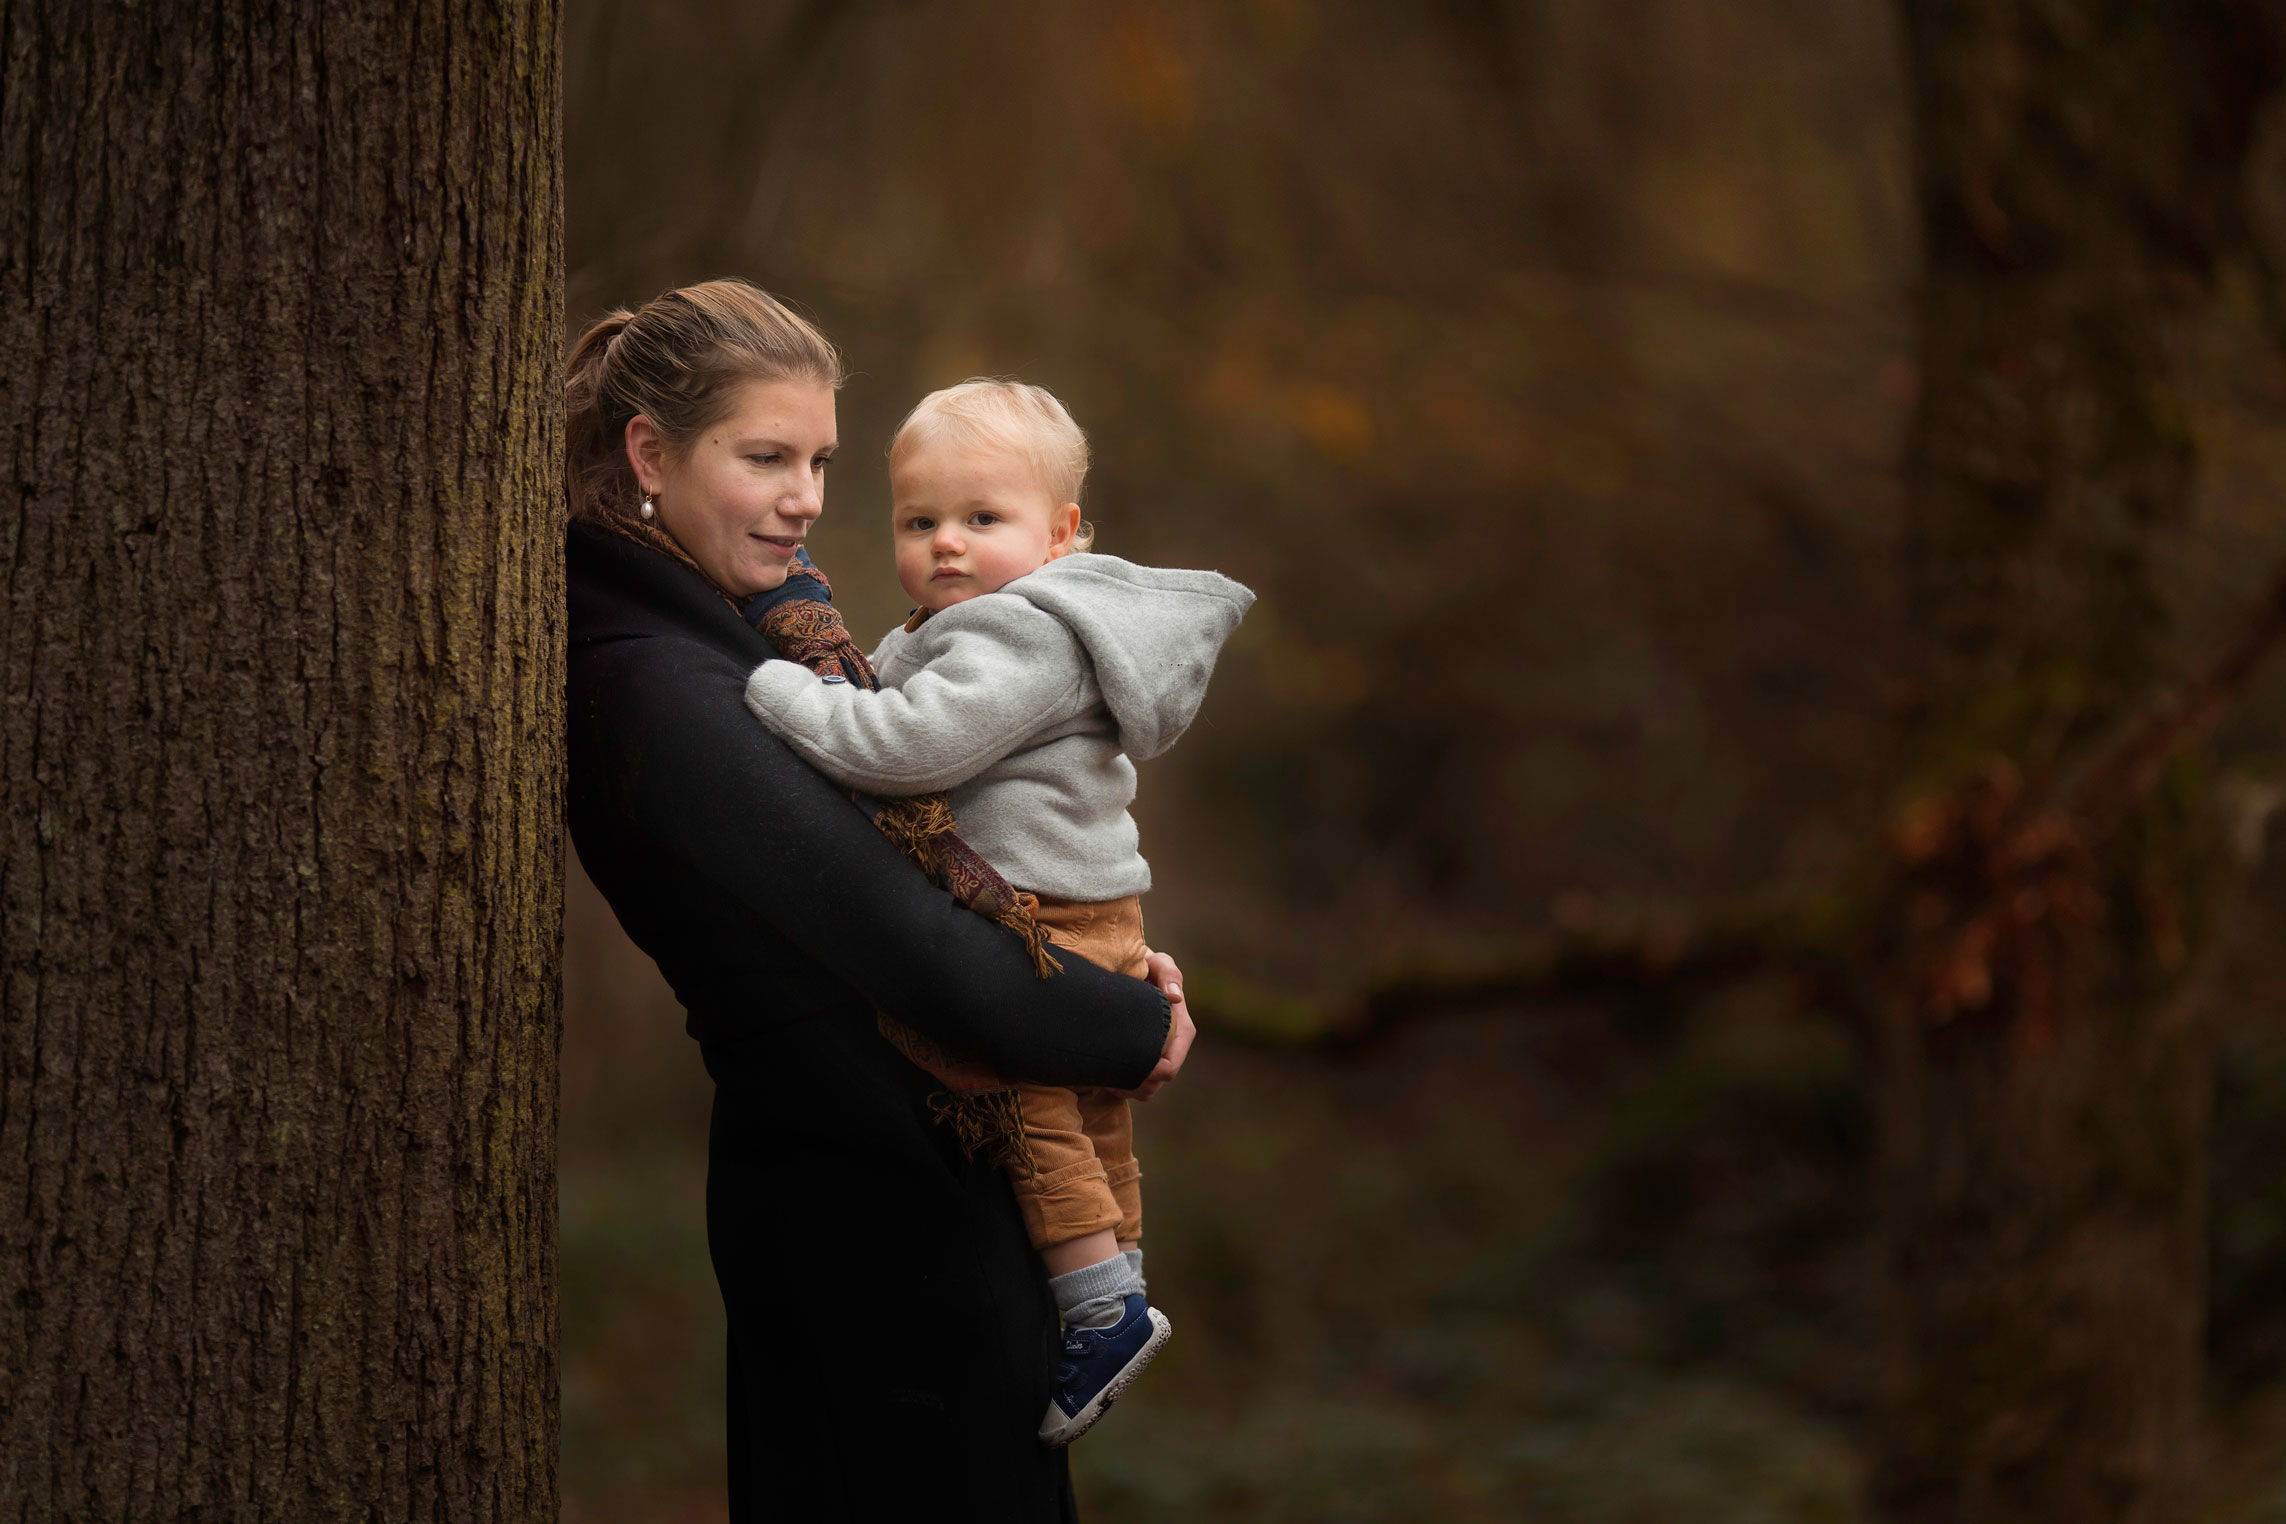 Family photo shoots in Hampstead Heath